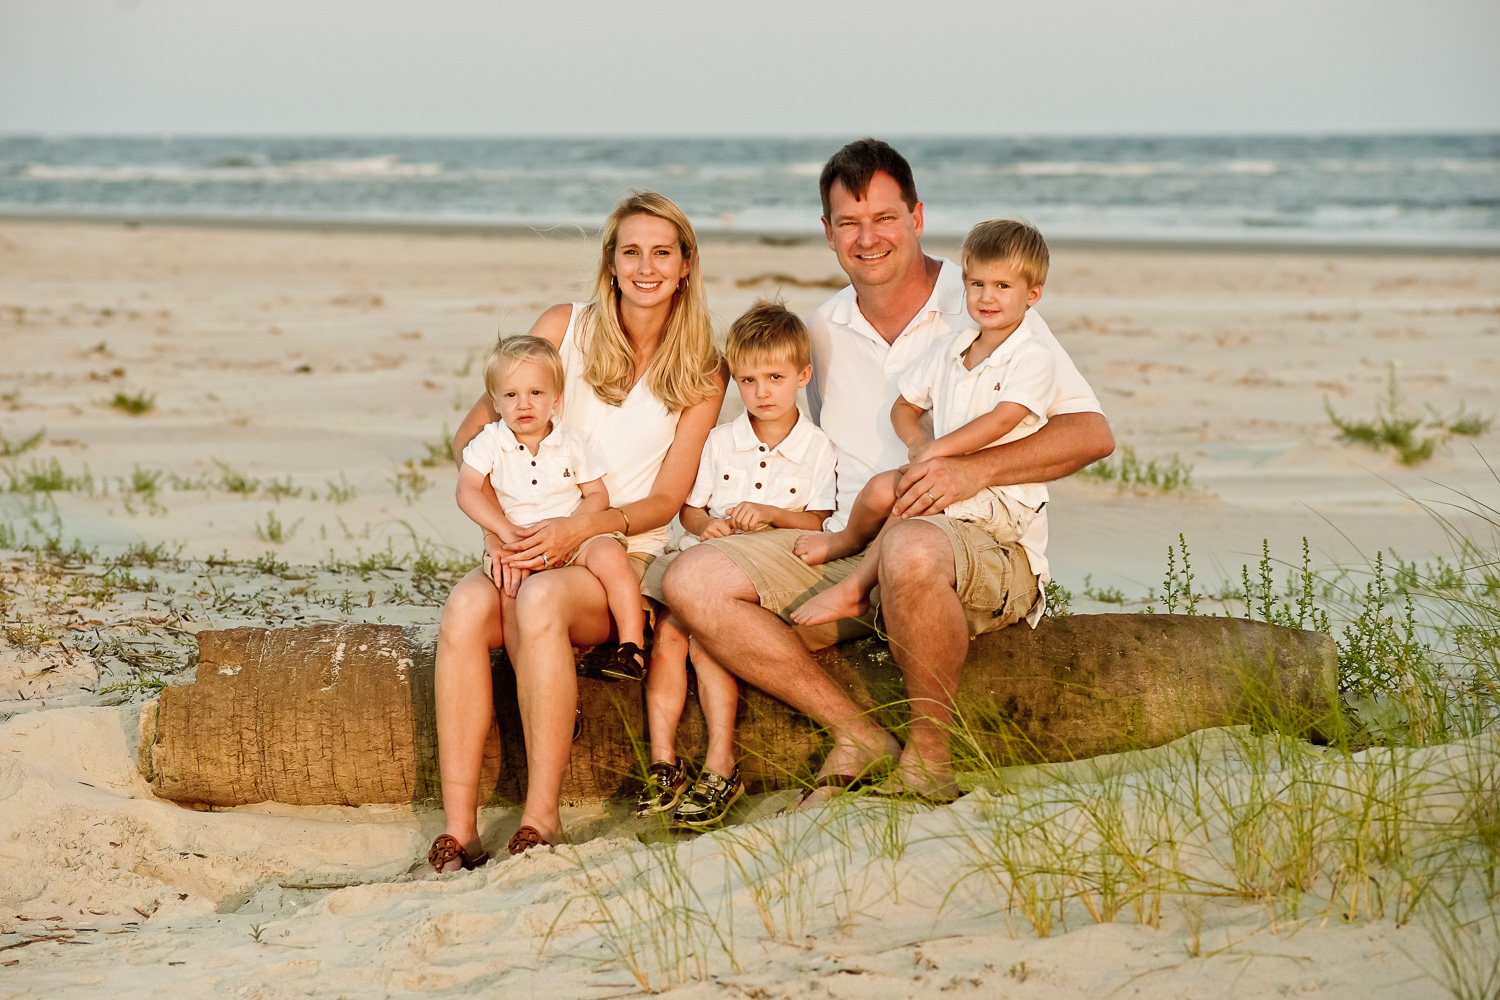 beach_portraits_beaufort-69.jpg